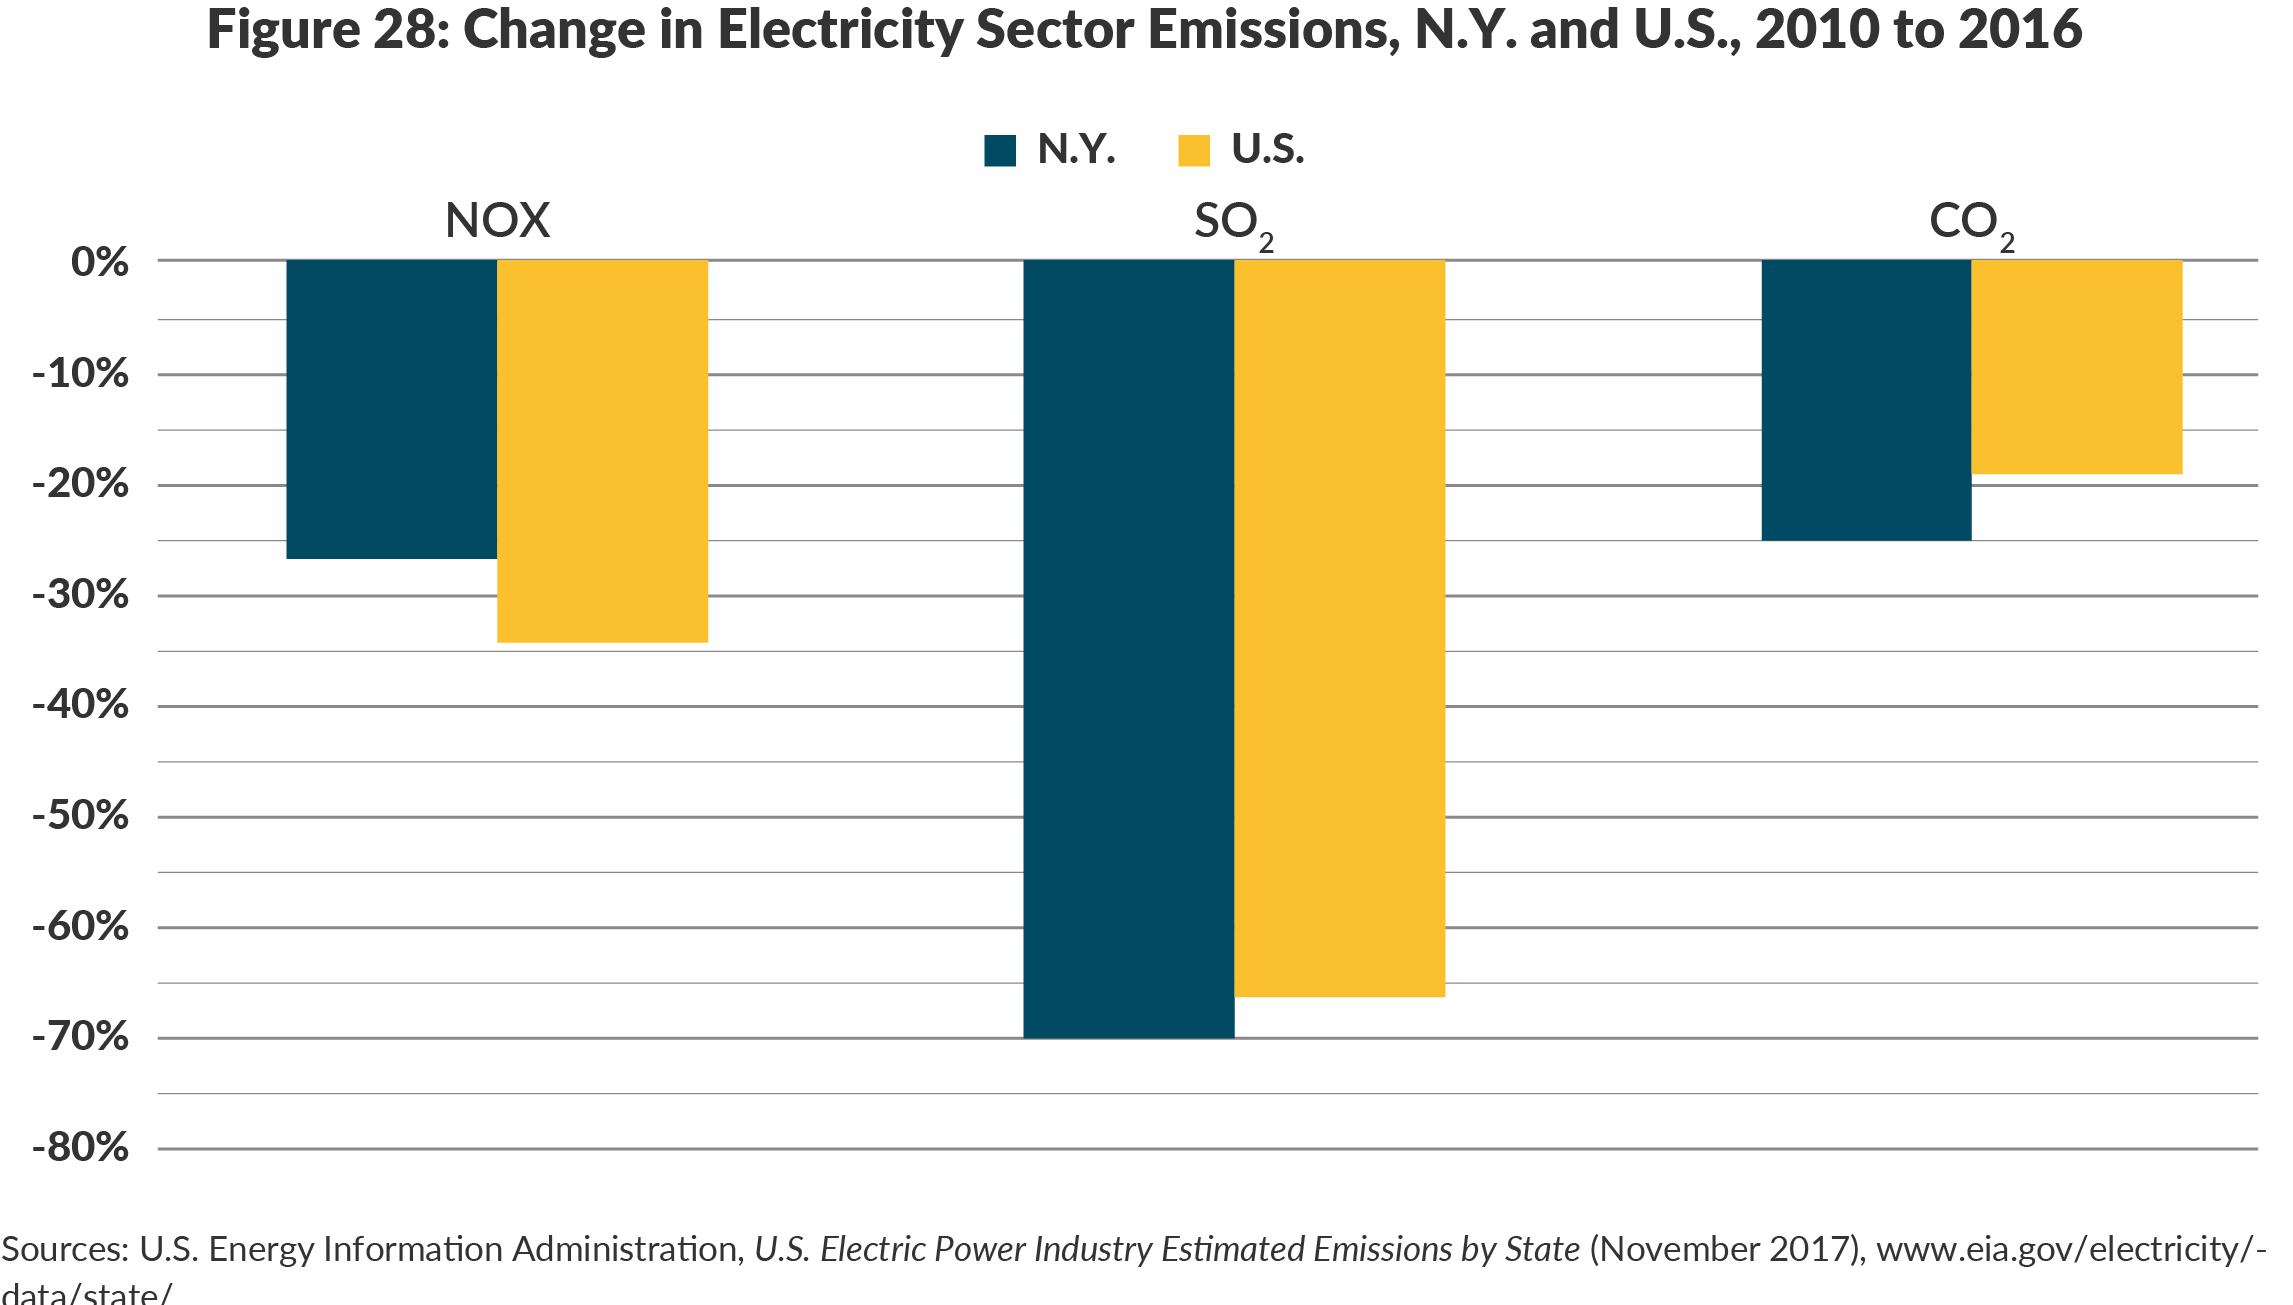 Figure 28: Change in Electricity Sector Emissions, N.Y. and U.S., 2010 to 2016